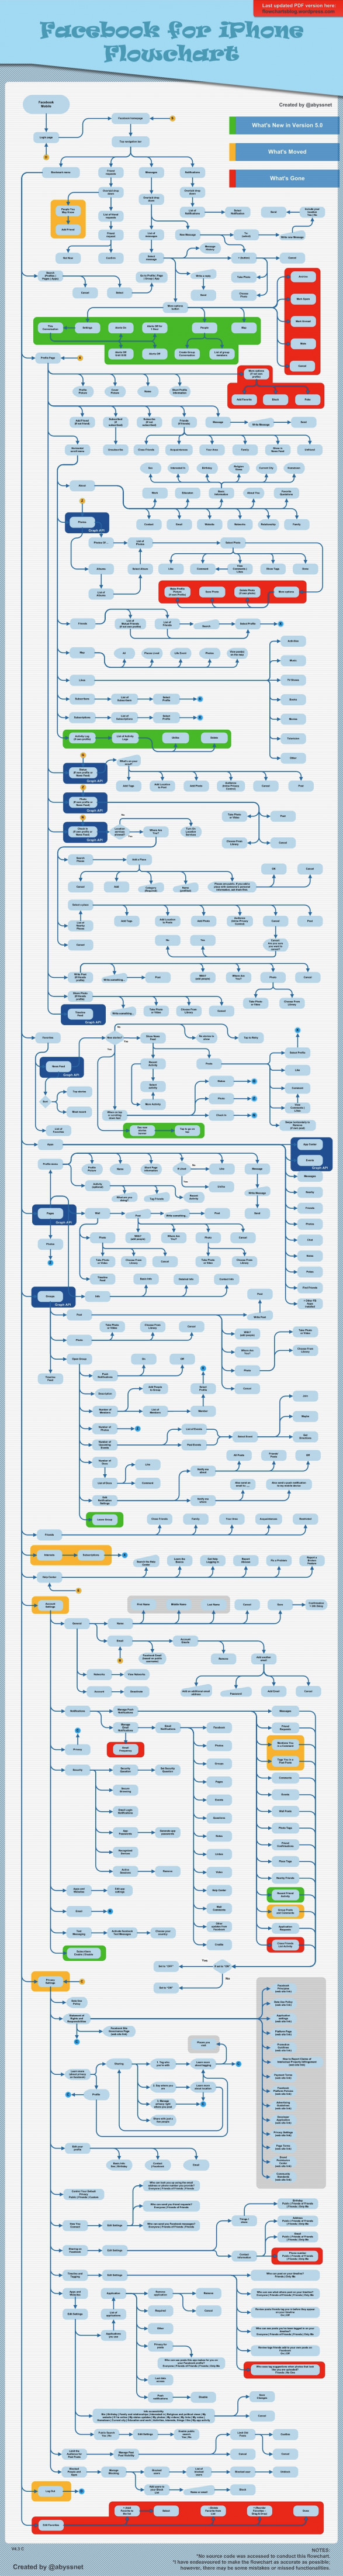 Facebook for iPhone: The Flowchart